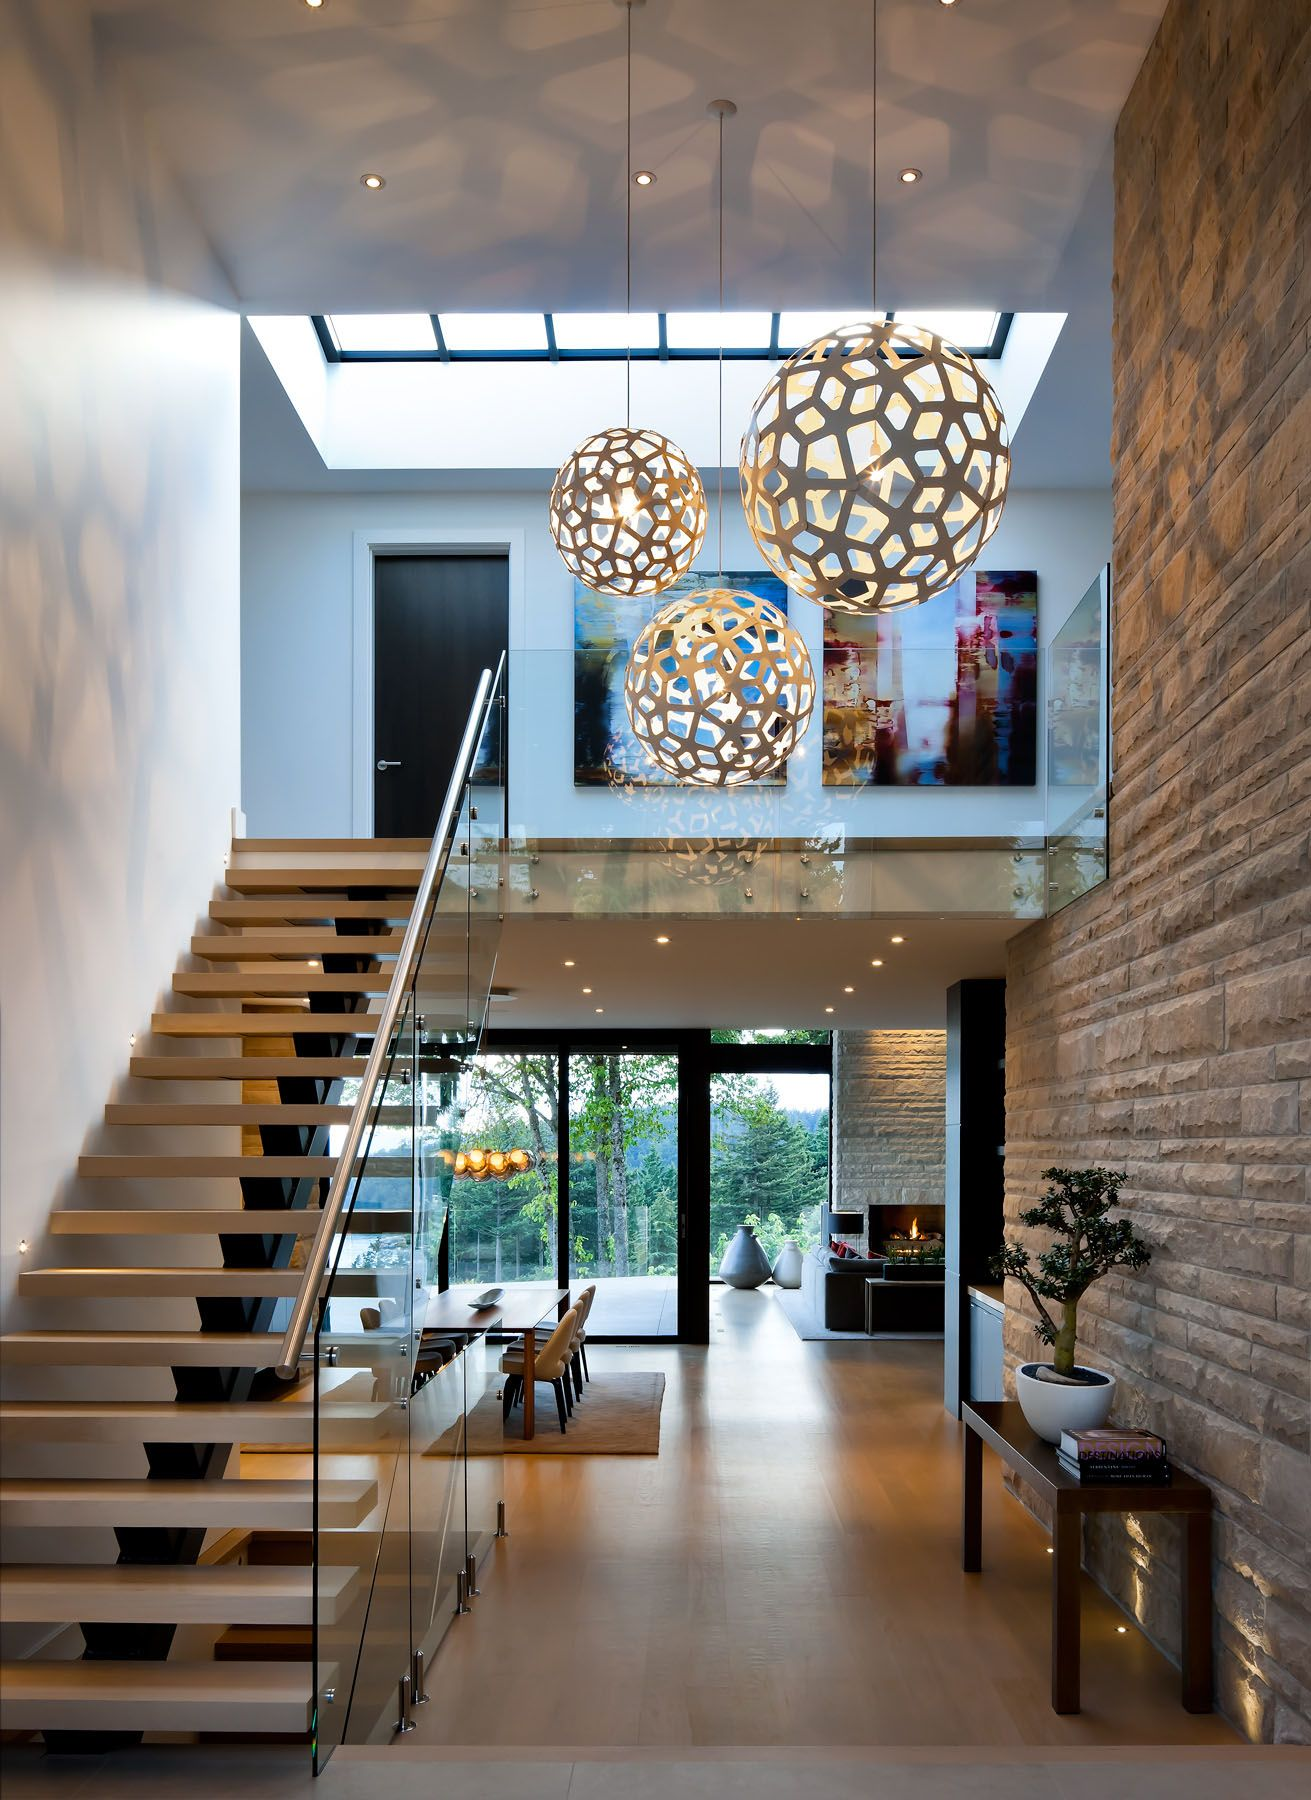 Burkehill Residence By Craig Chevalier And Raven Inside Interior Design Architecture Design Interior Architecture Design House Design Home